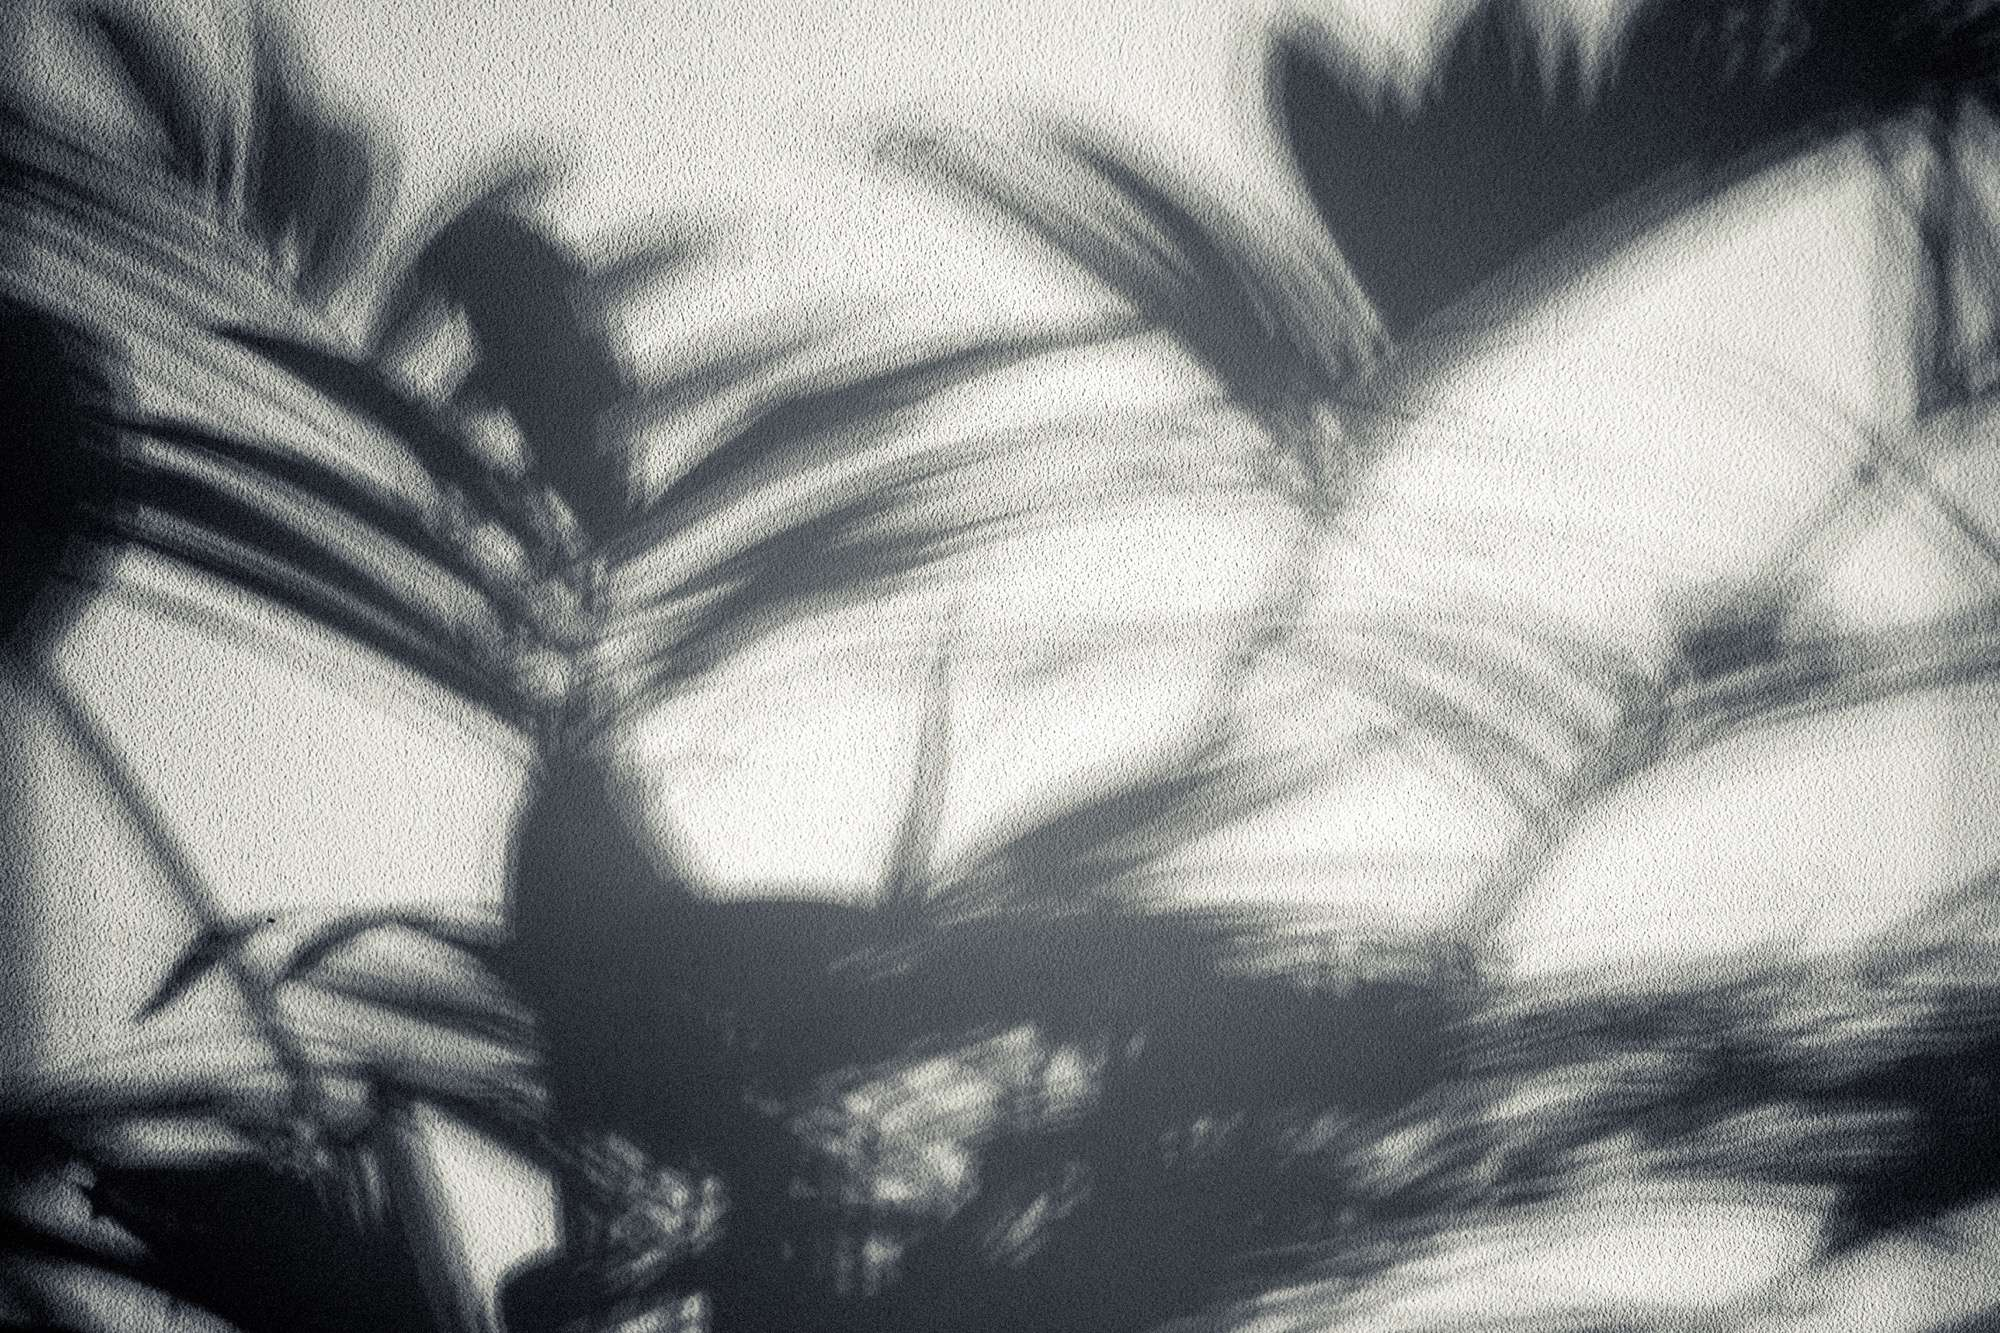 Shadows of my home - Rosanne Dubbeld Photography